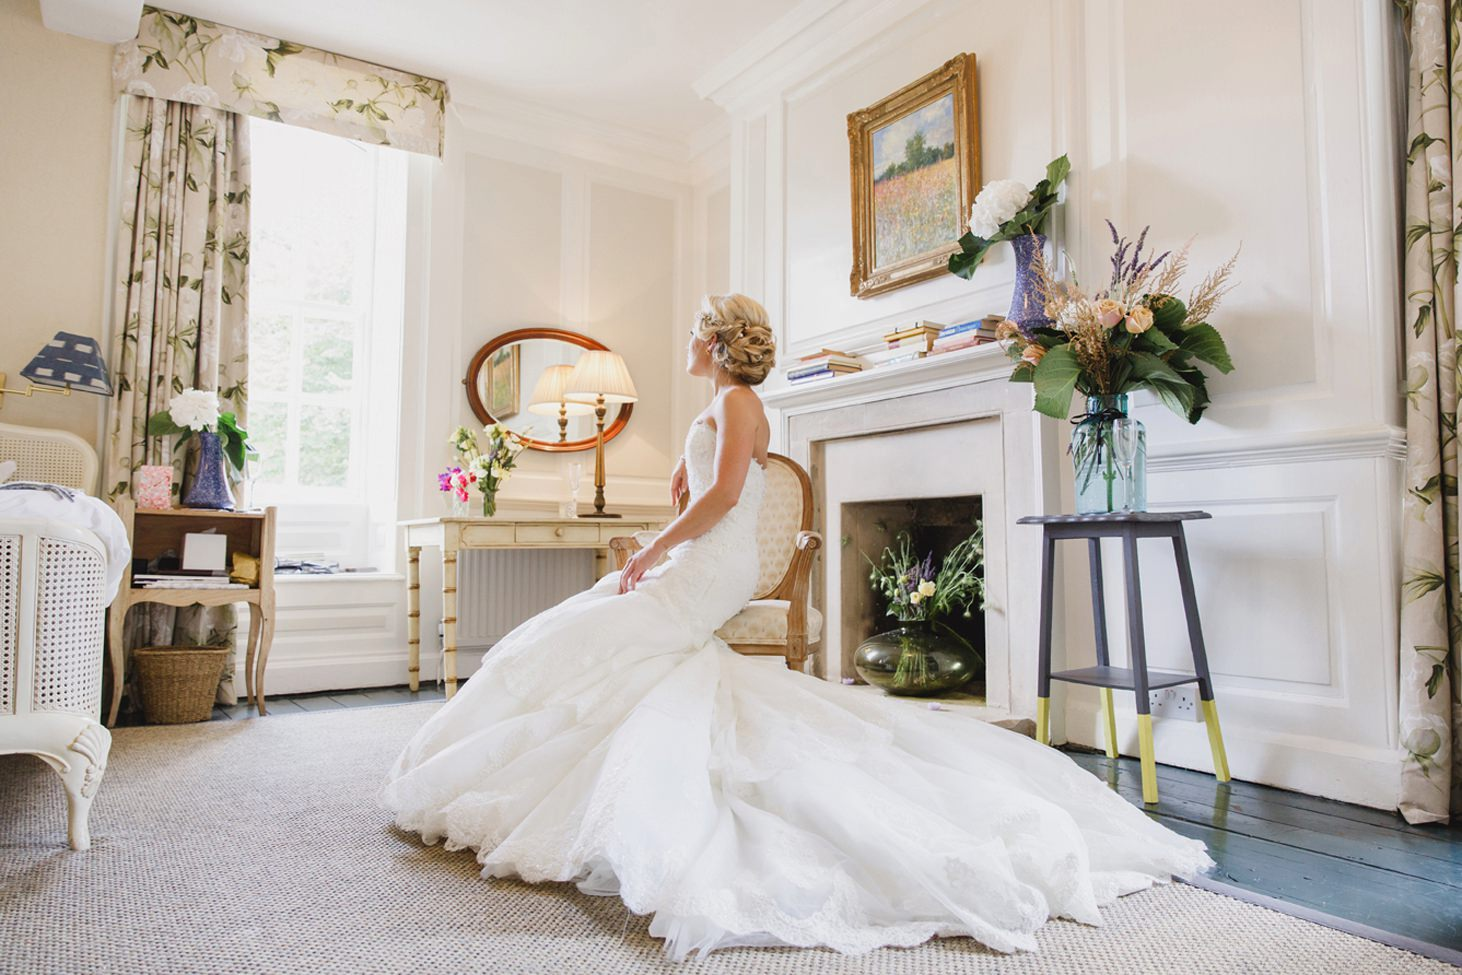 The Rectory Hotel Crudwell bride in wedding dress